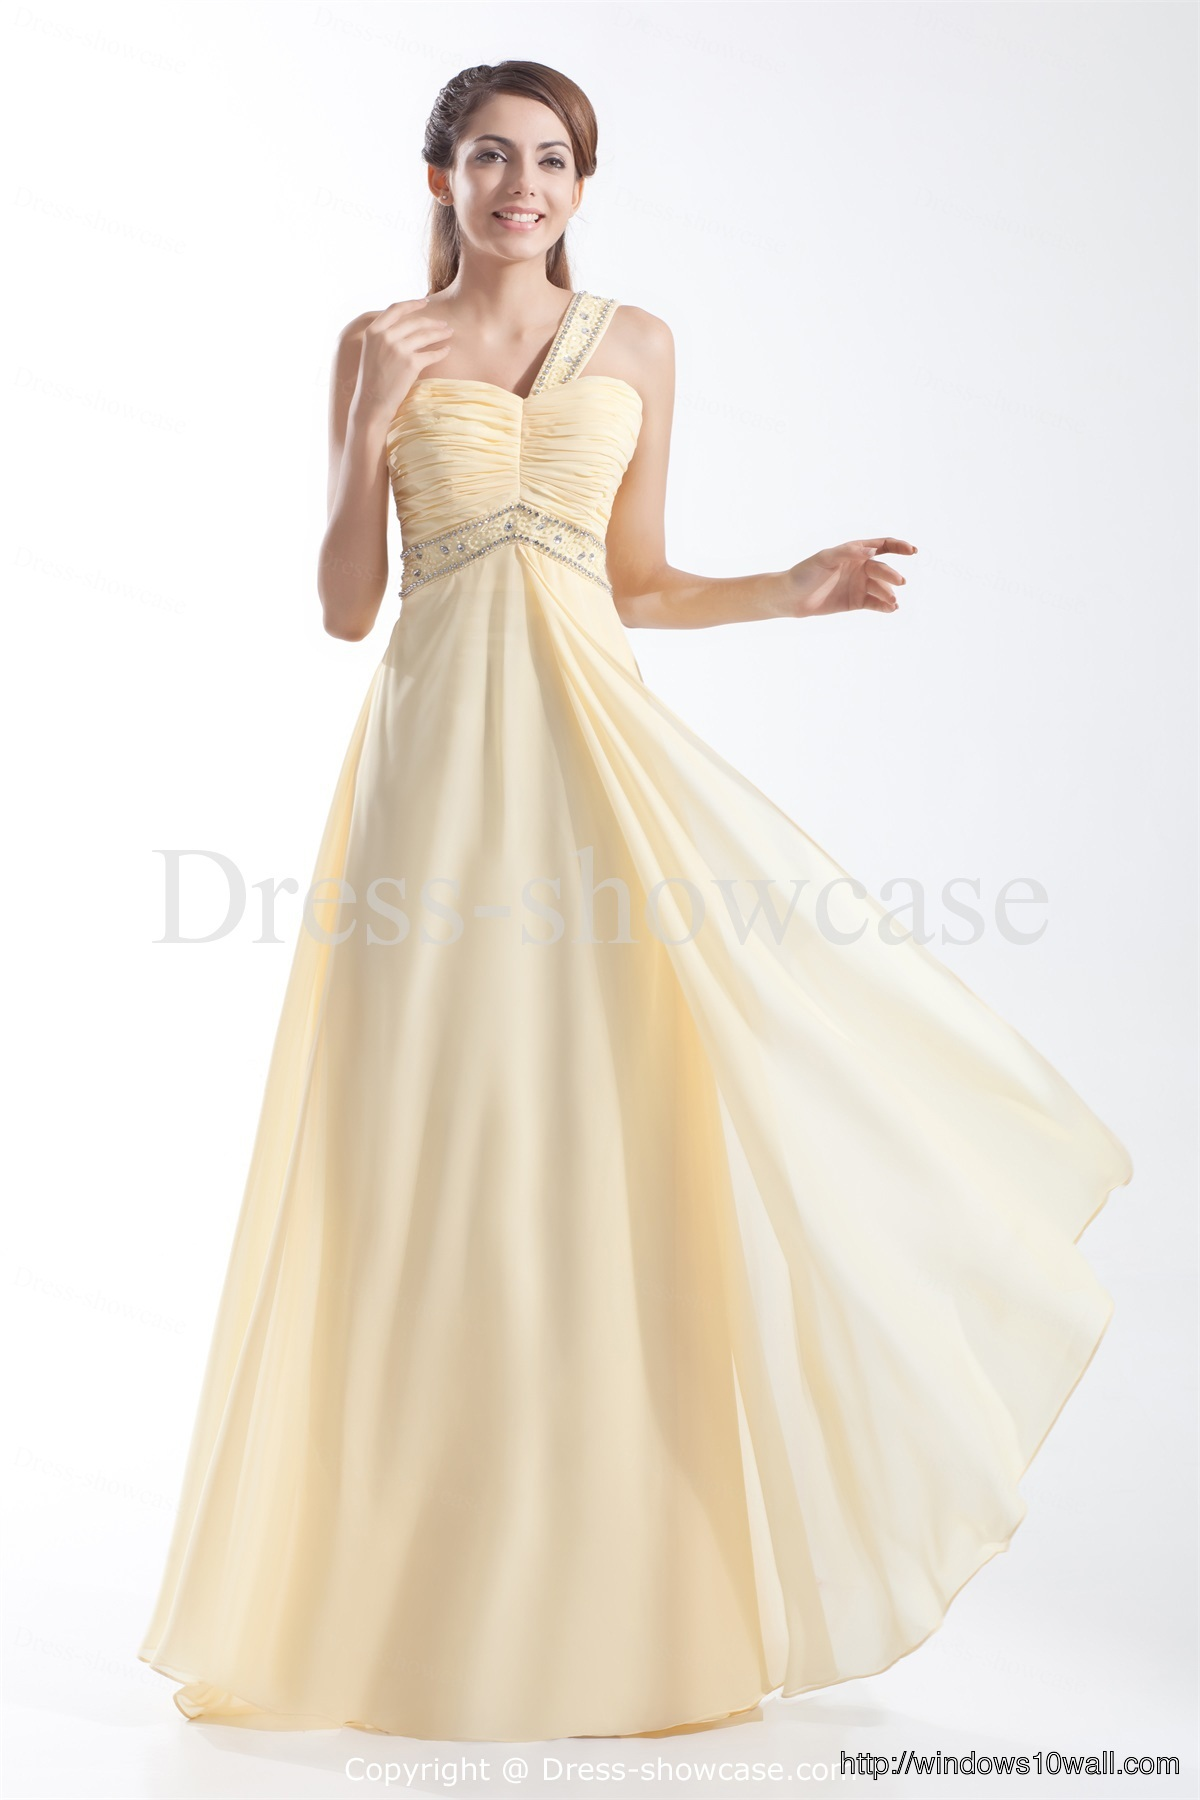 sleeveless-prom-dresses-light-yellow-beading-background-wallpaper